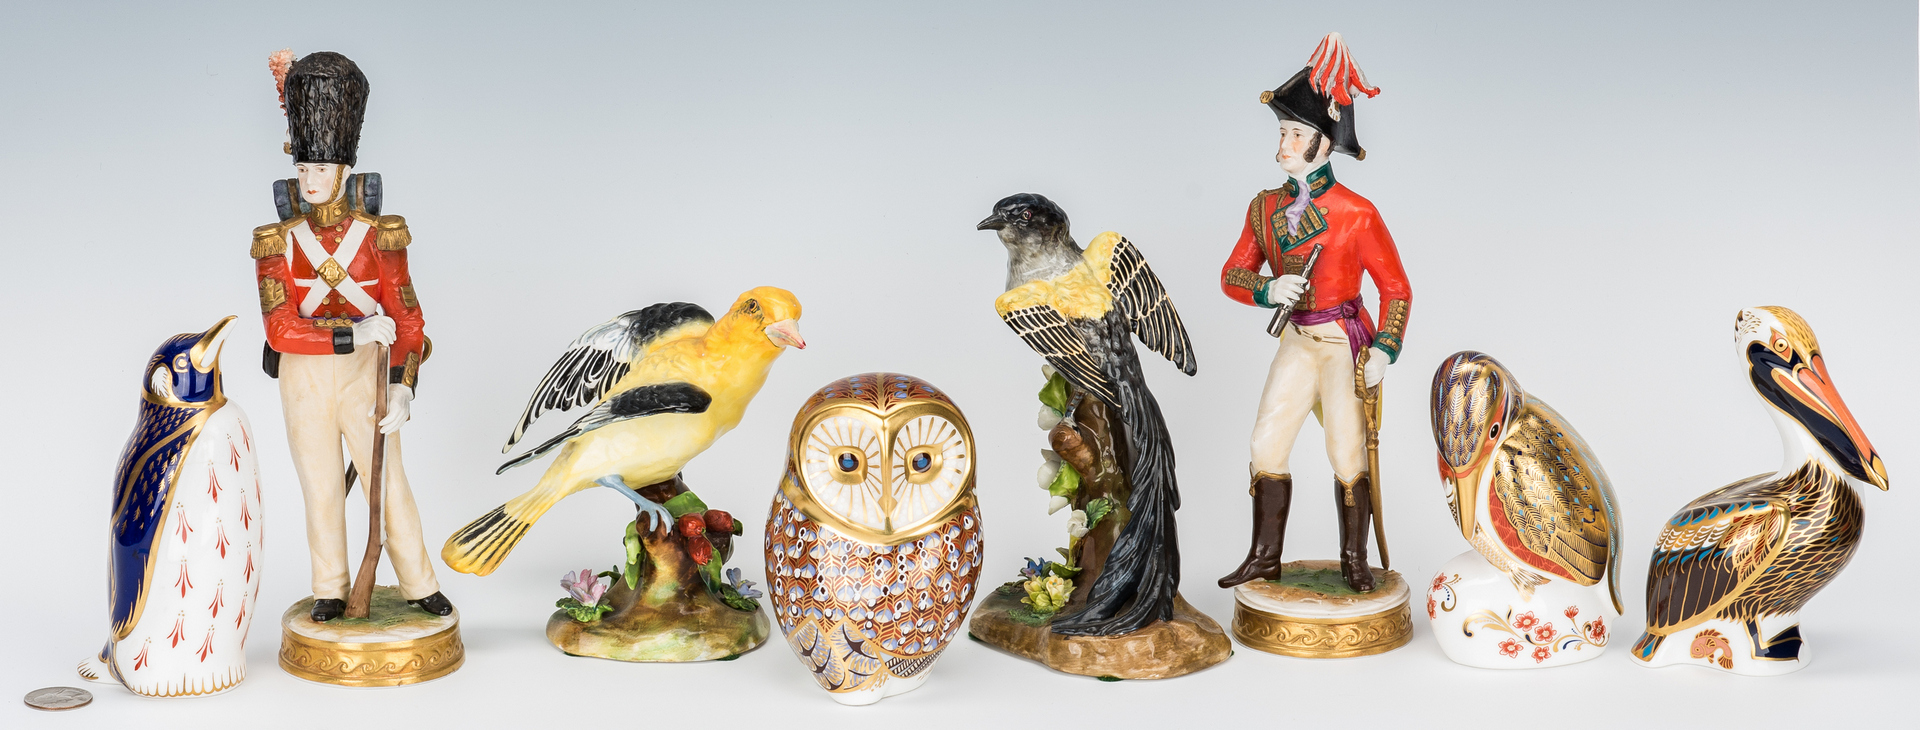 Lot 844: 8 Assorted European Porcelain Figural Items, Crown Derby & Staffordshire